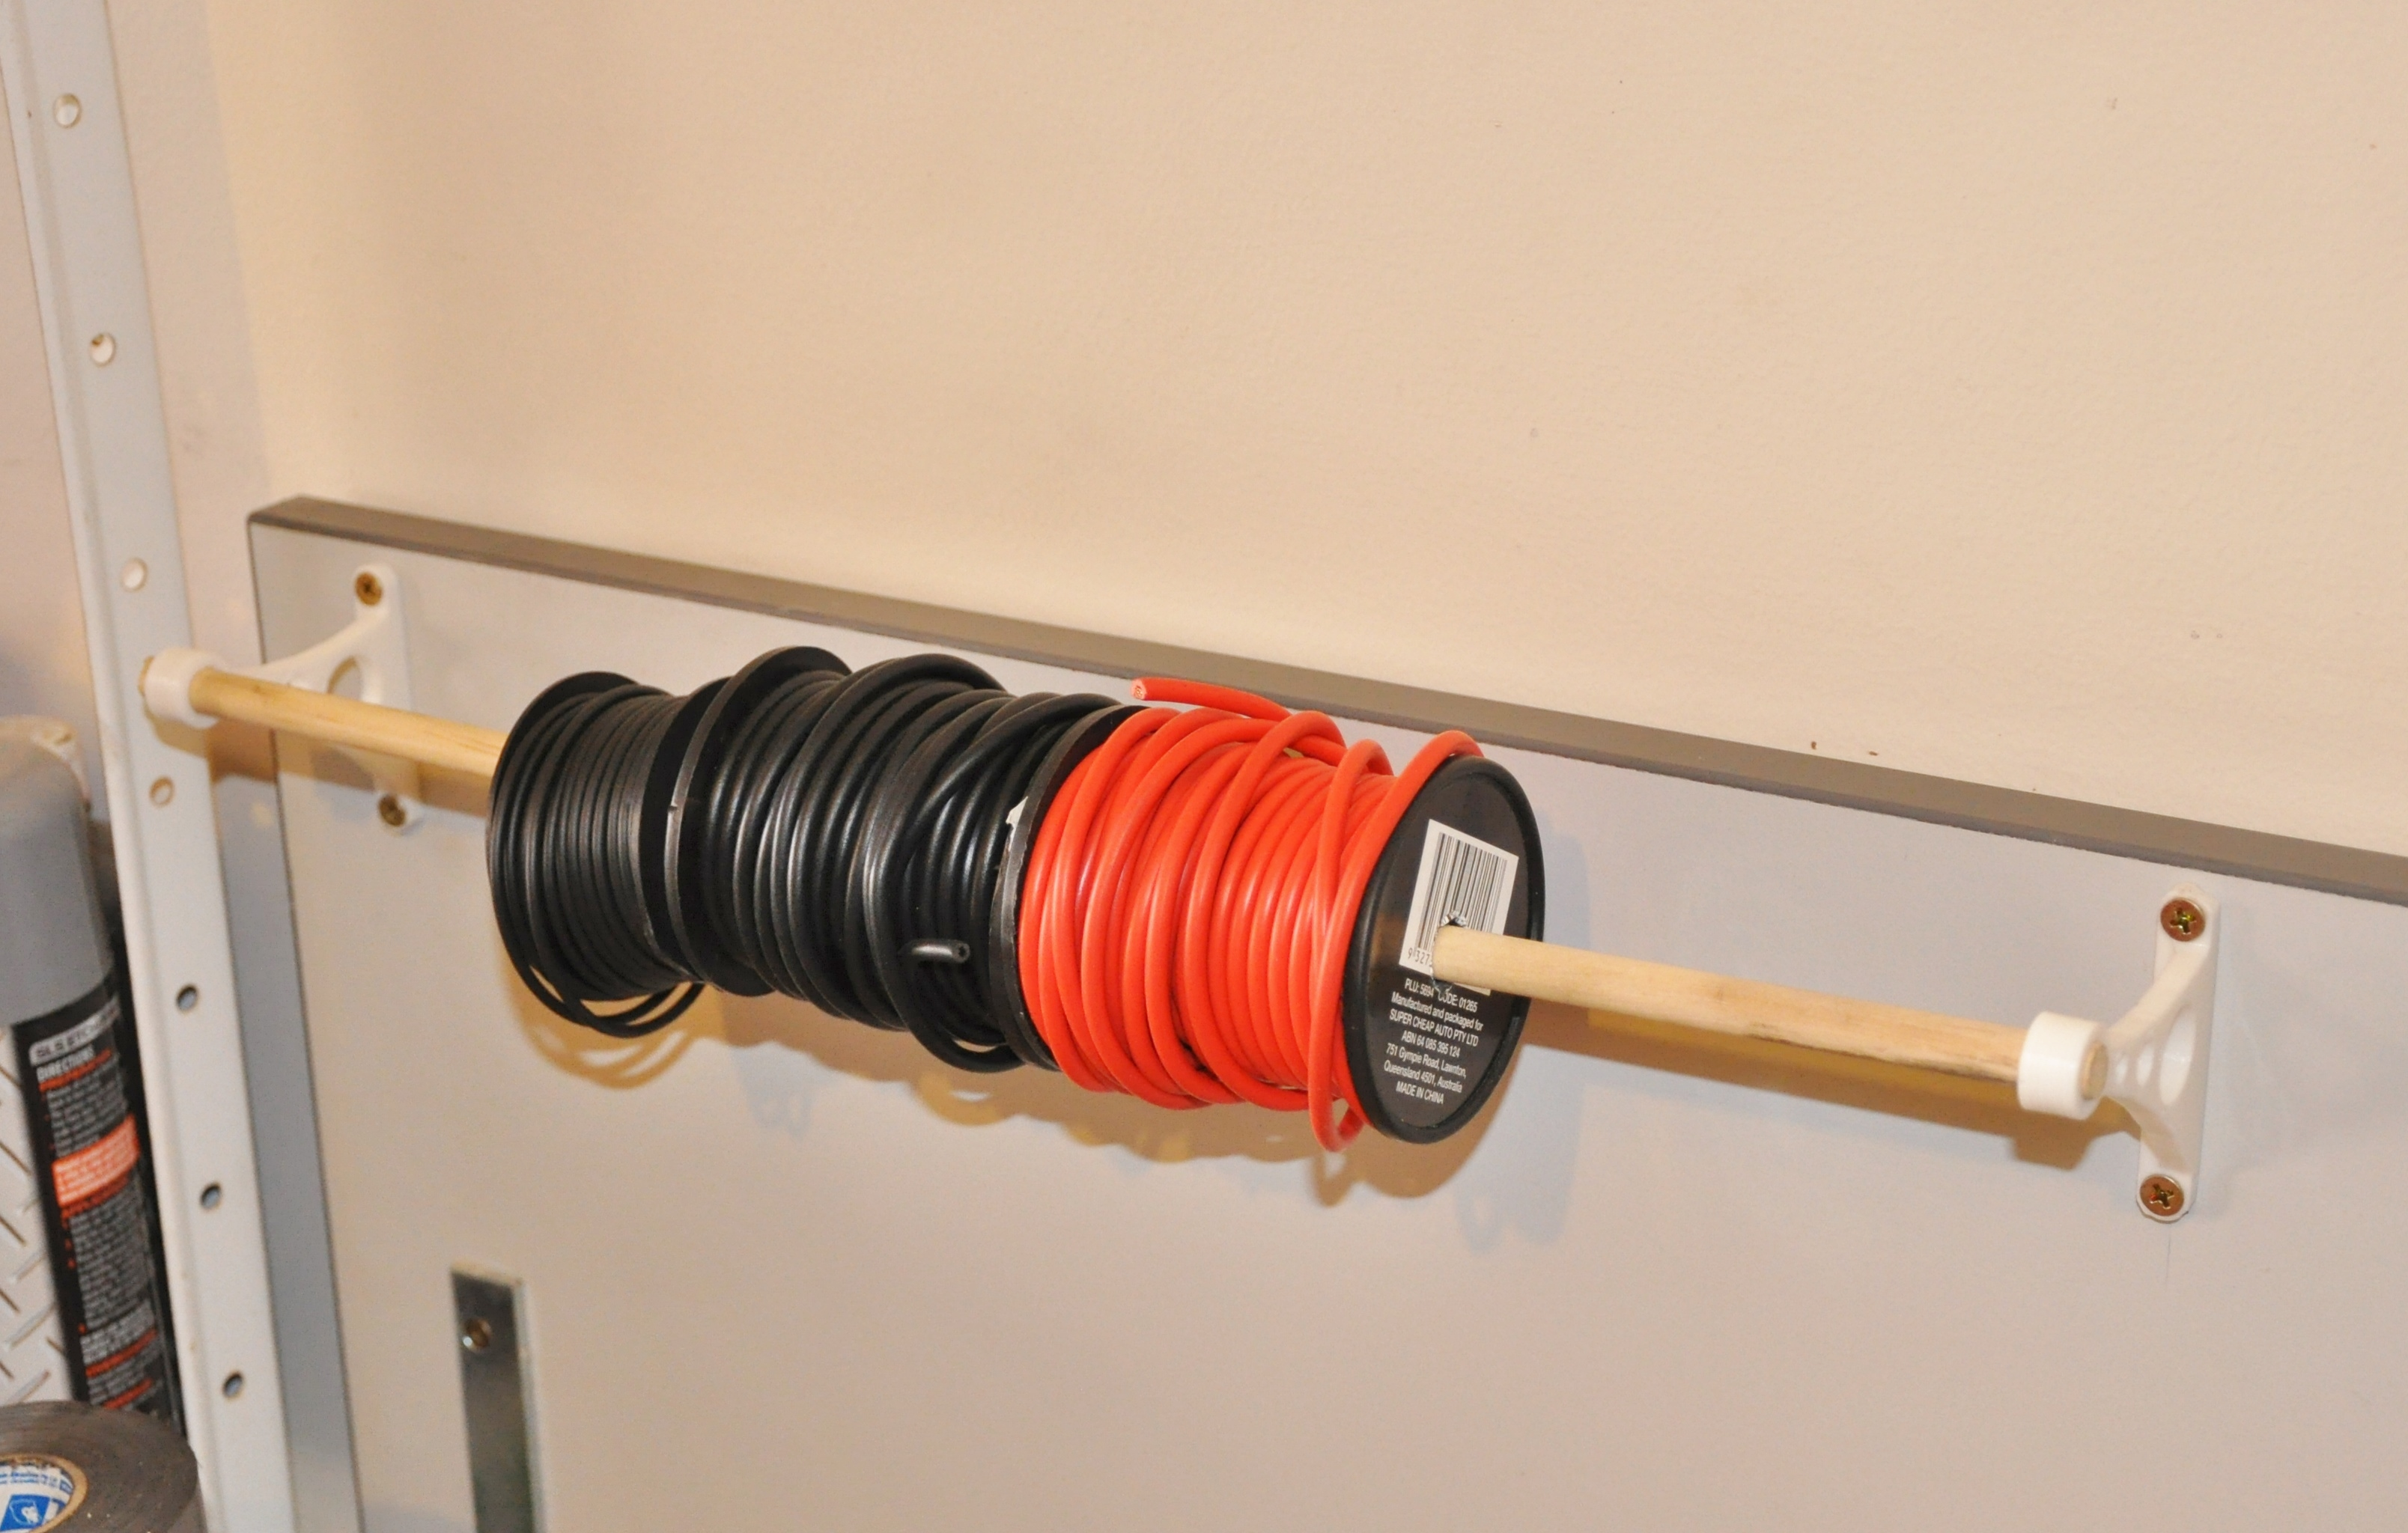 Wire Spool Holder Bracket by MCroucher - Thingiverse